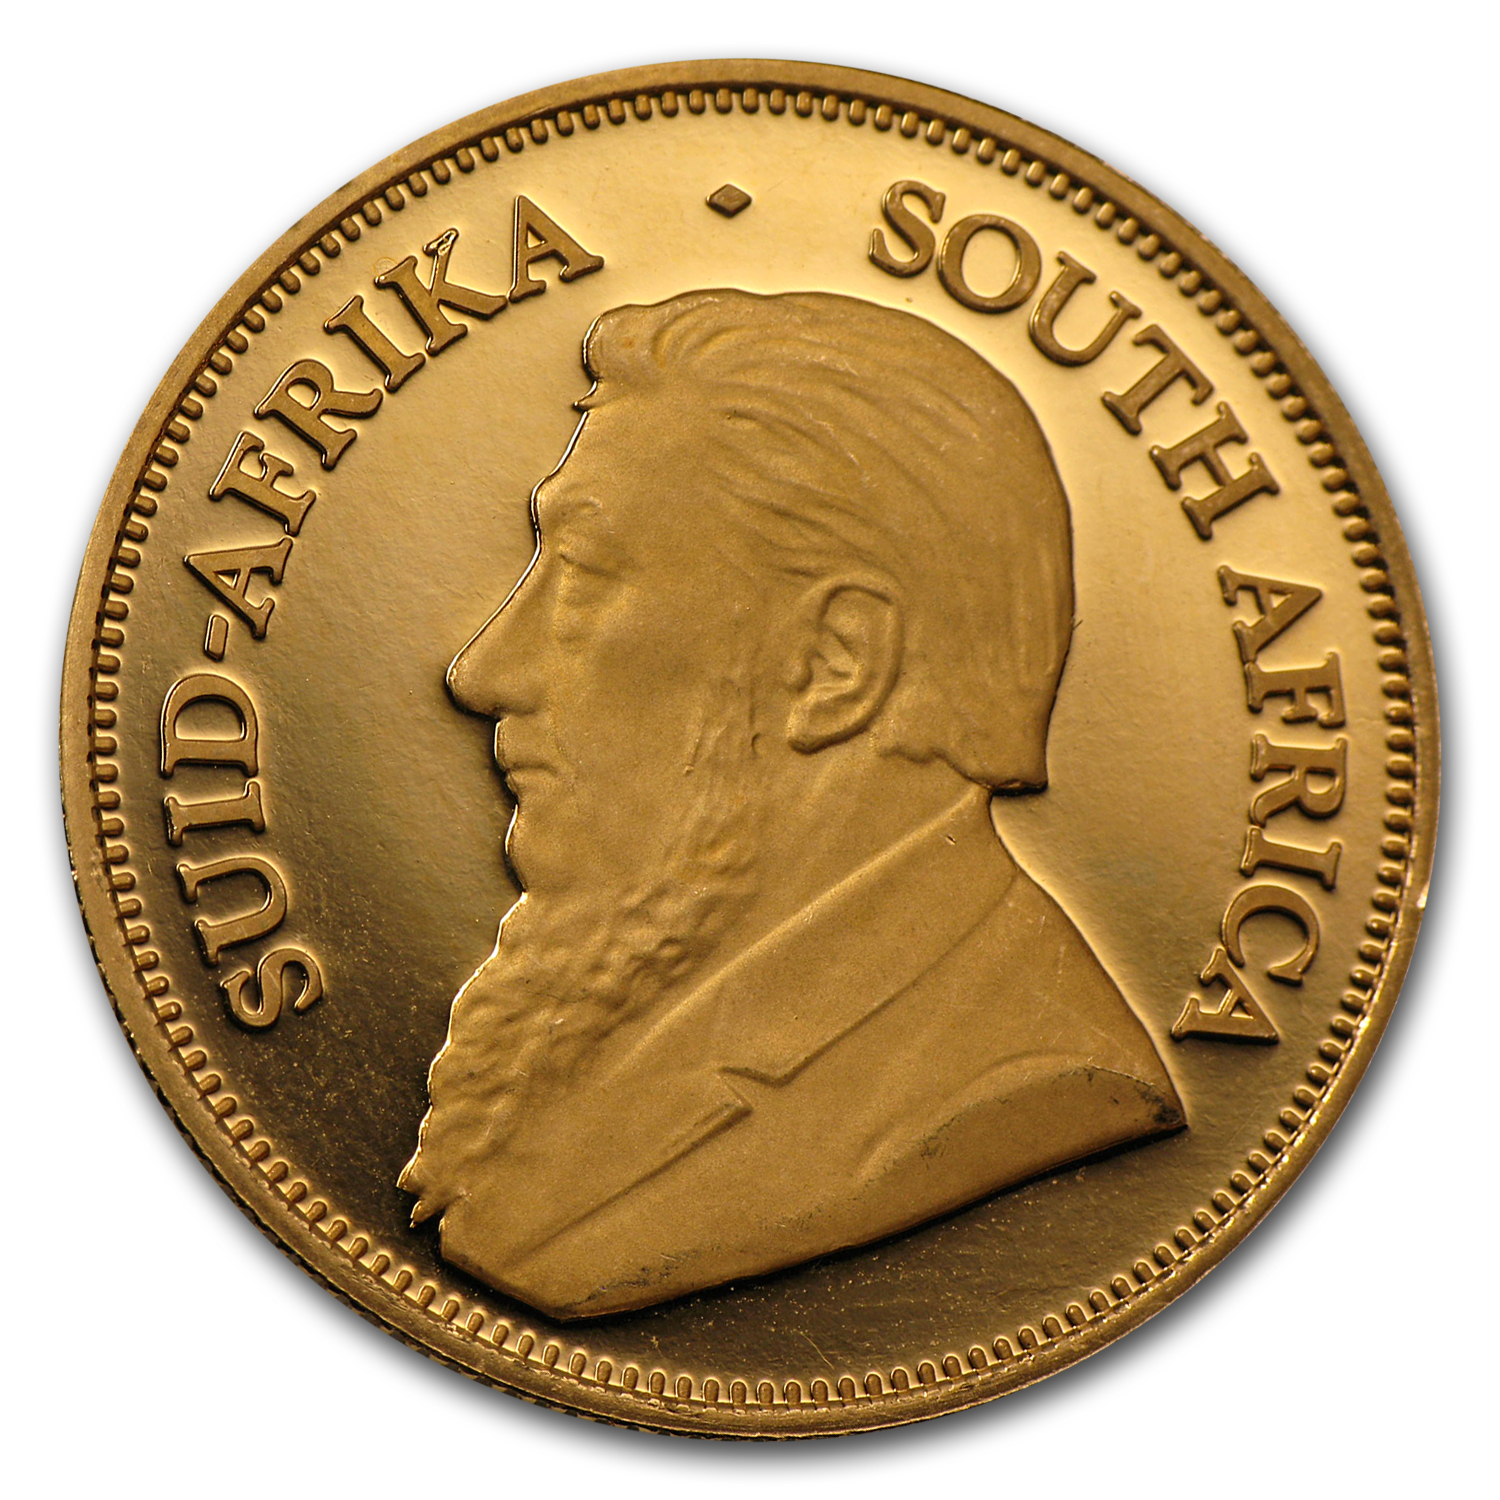 2006 South Africa 1/2 oz Proof Gold Krugerrand